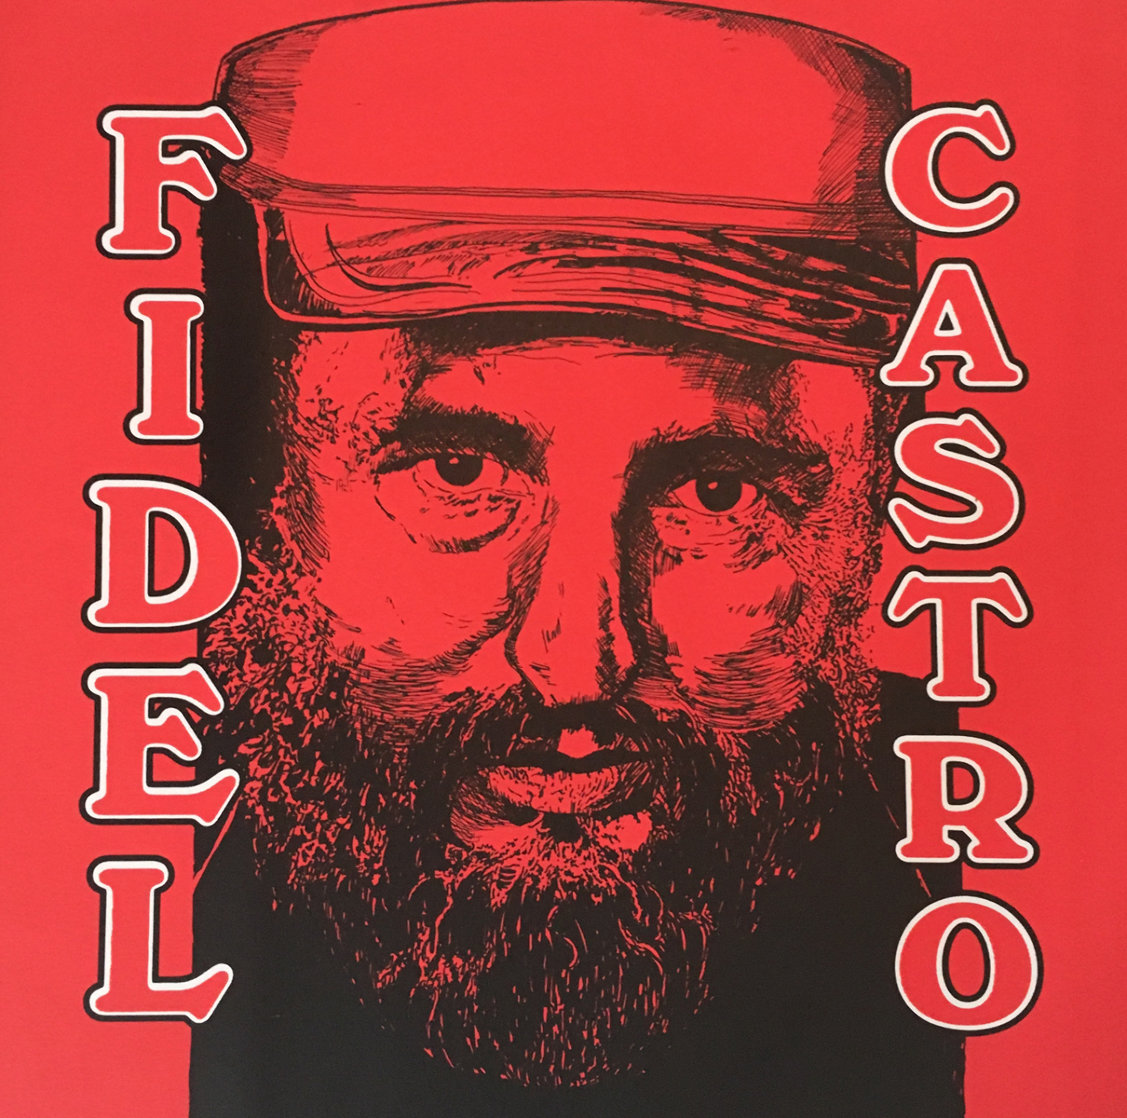 Fidel Castro Embellished Limited Edition Print by Steve Kaufman